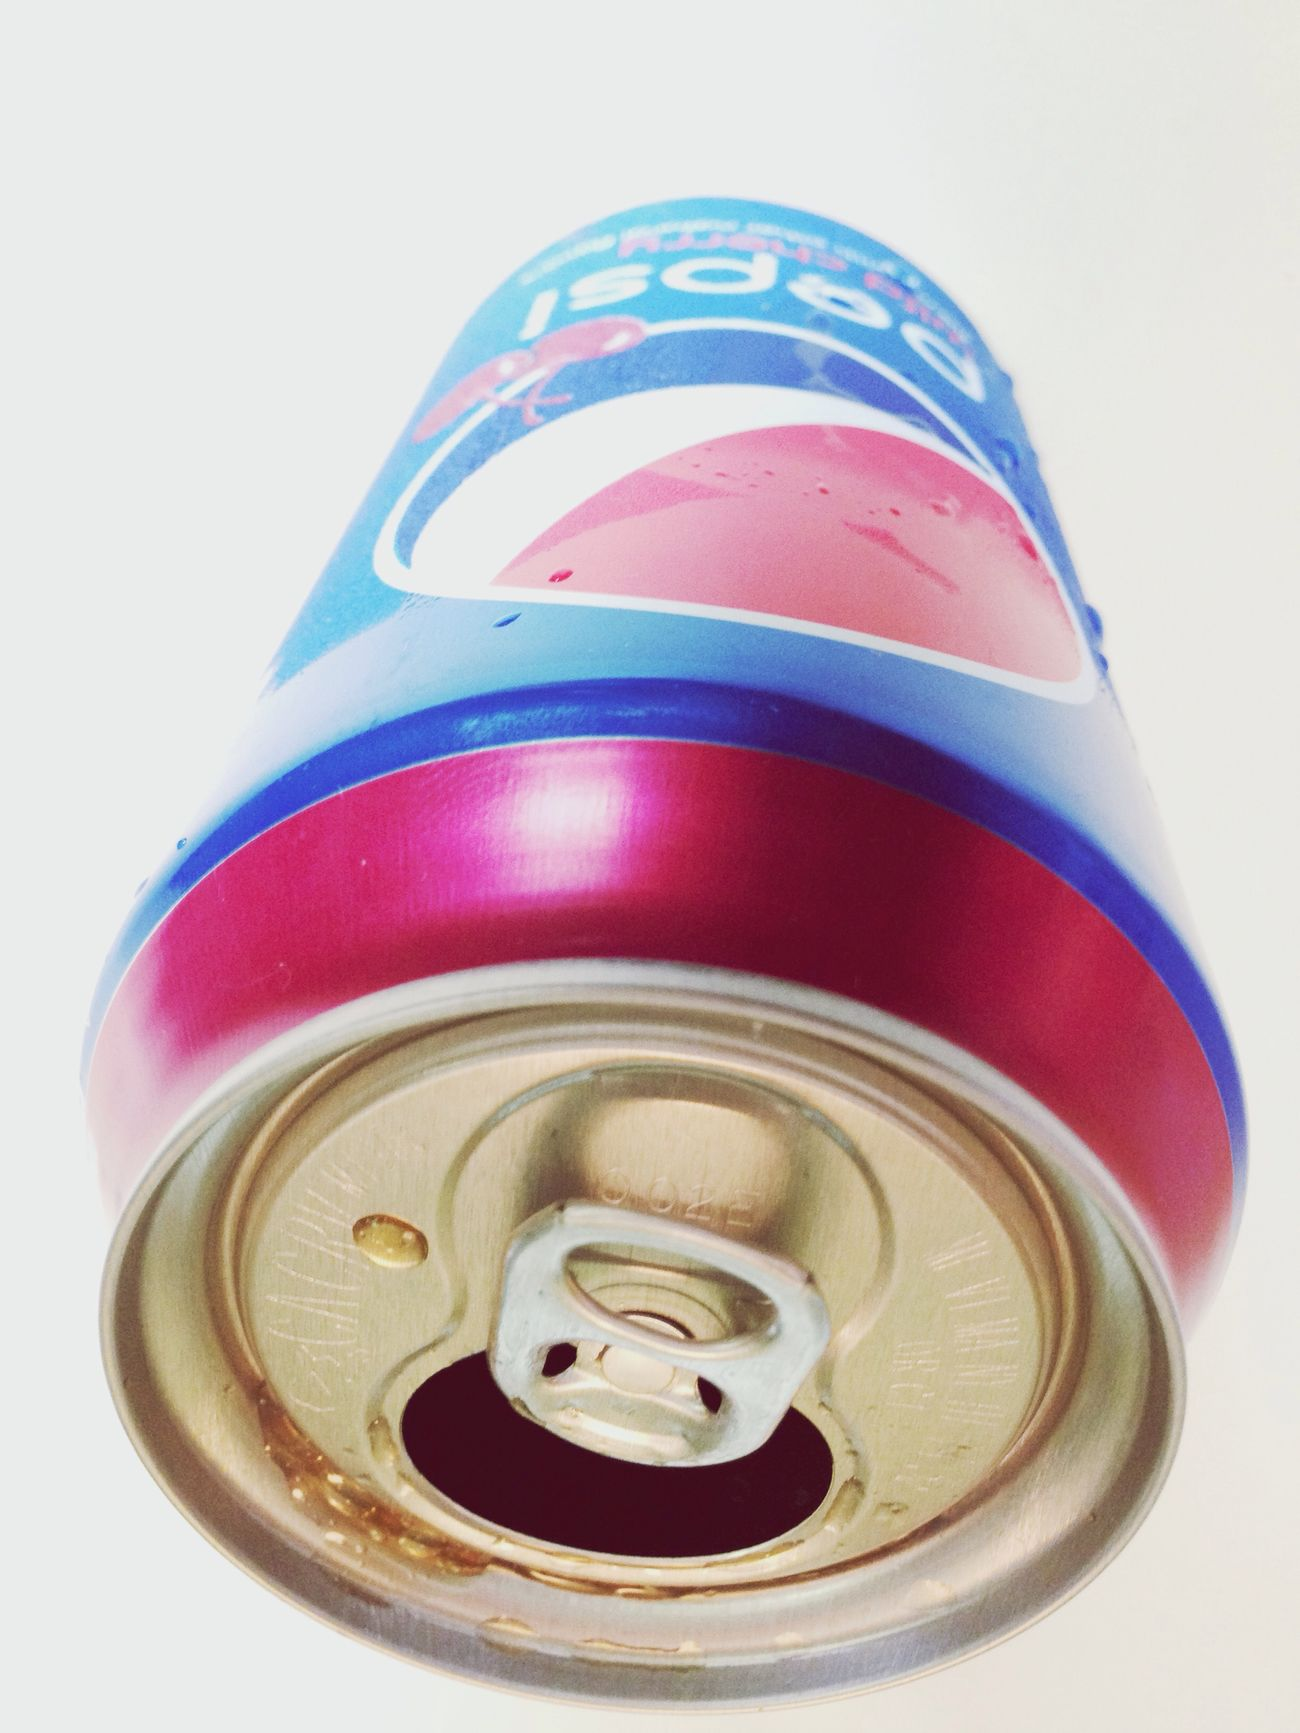 Soda Can Cold Wild Cherry pepsi sucka